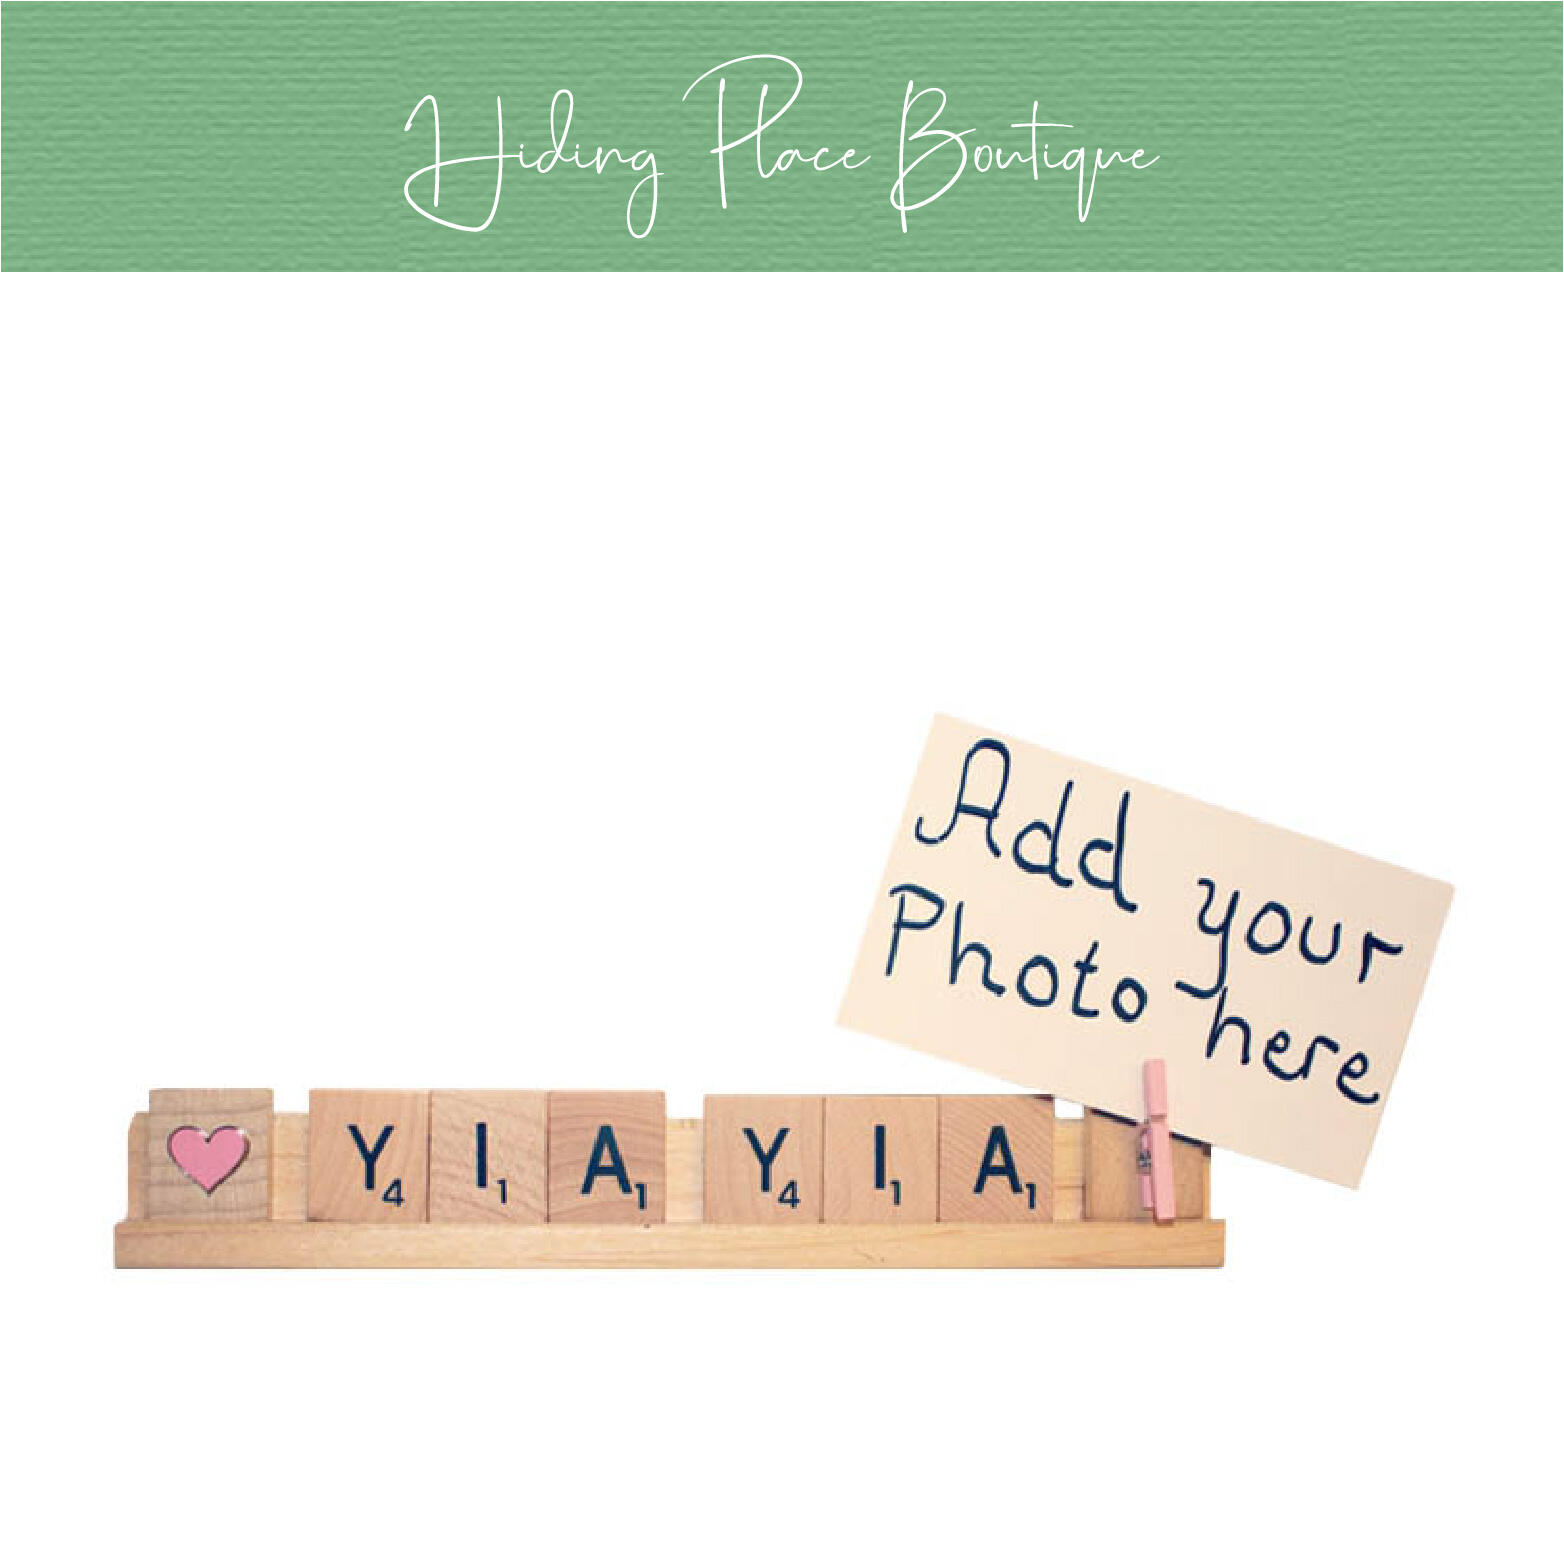 yia yia photo frame by hiding place boutique